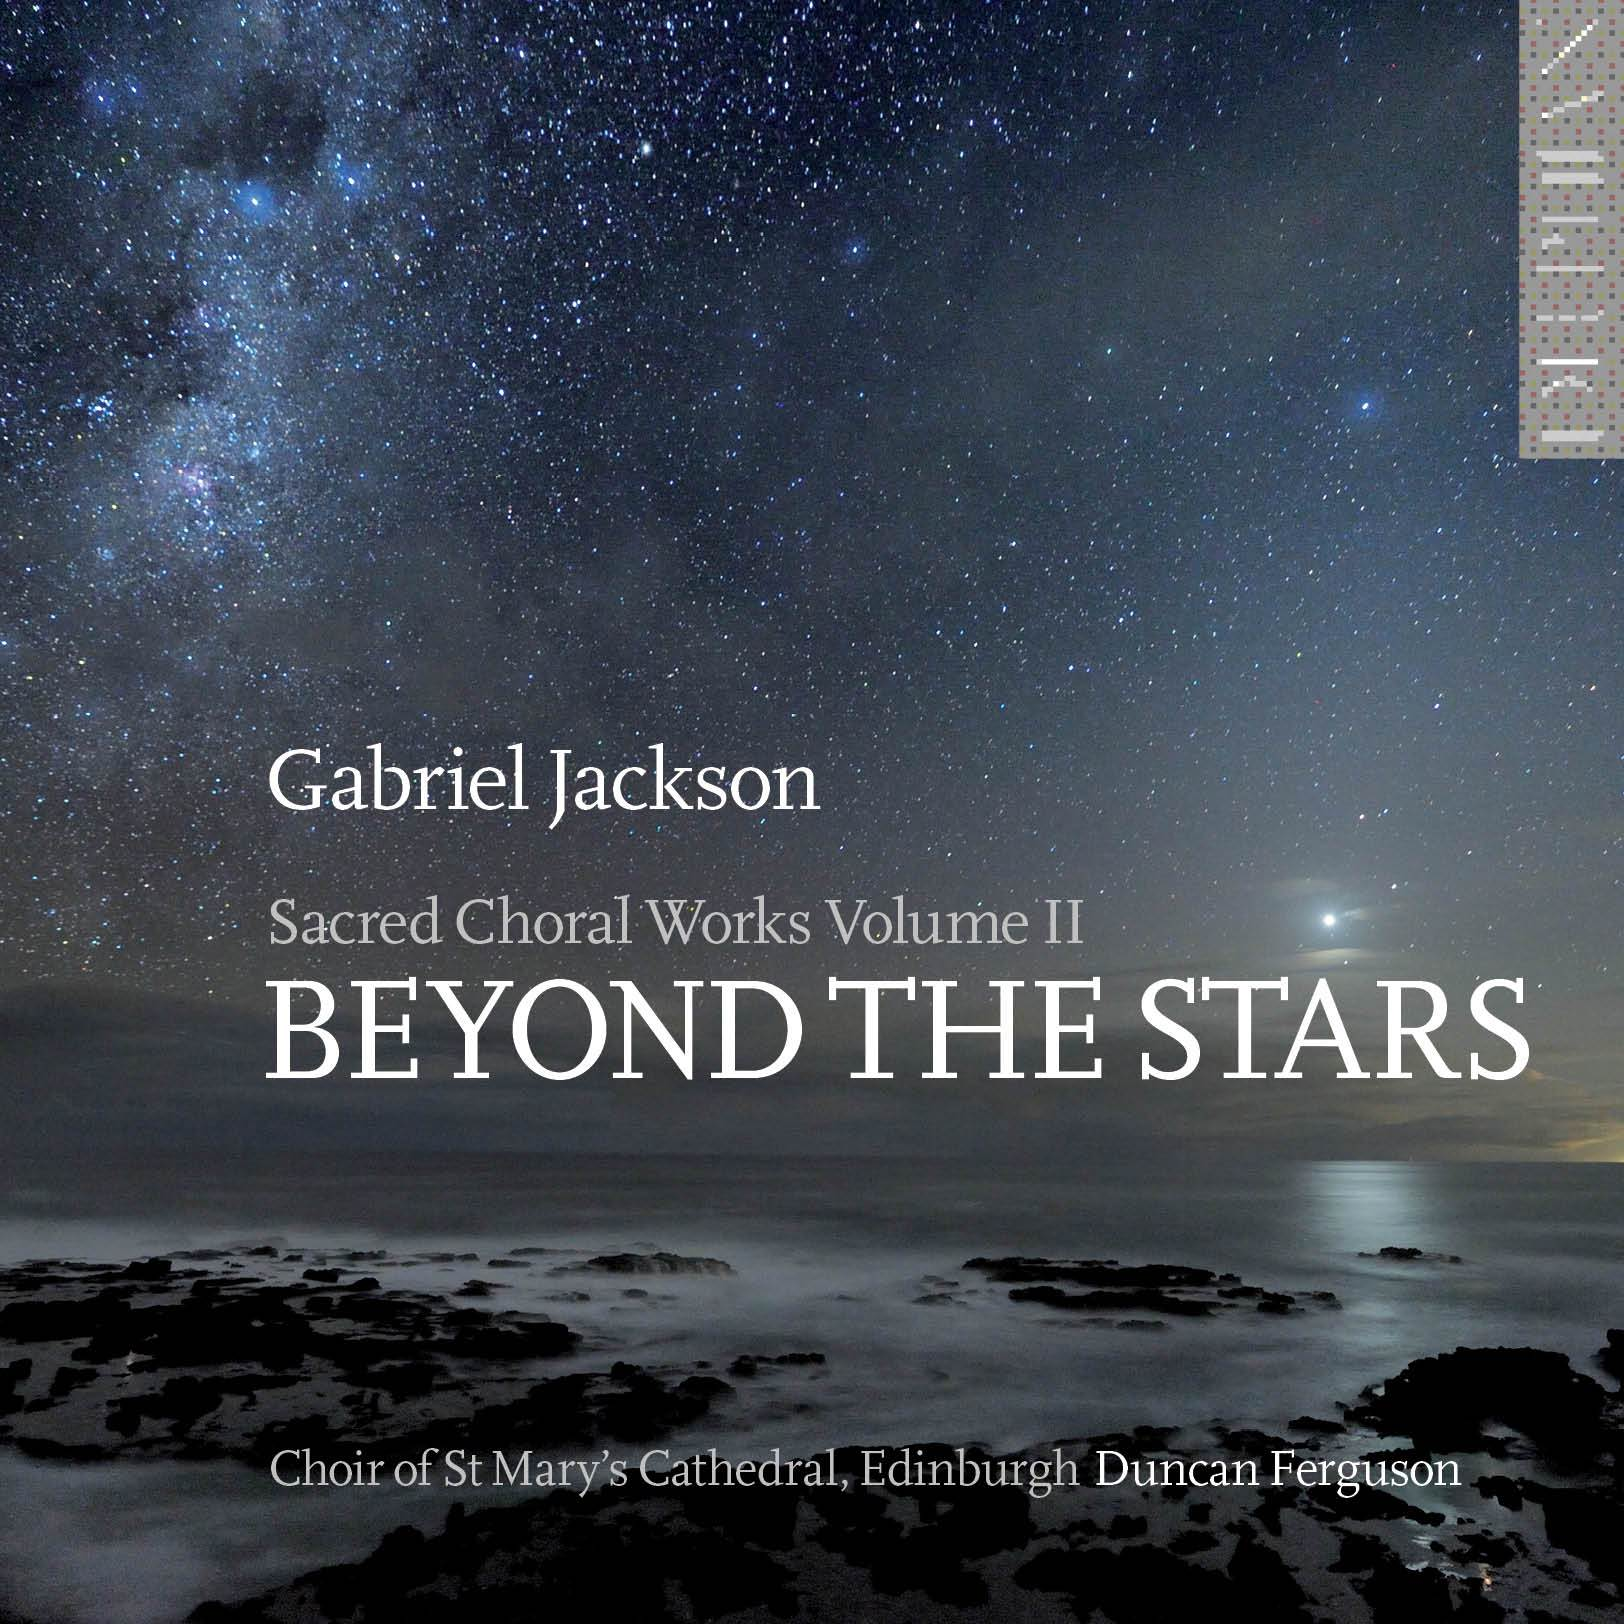 Gabriel Jackson: Beyond the Stars (Sacred Choral Works Vol II) CD Delphian Records